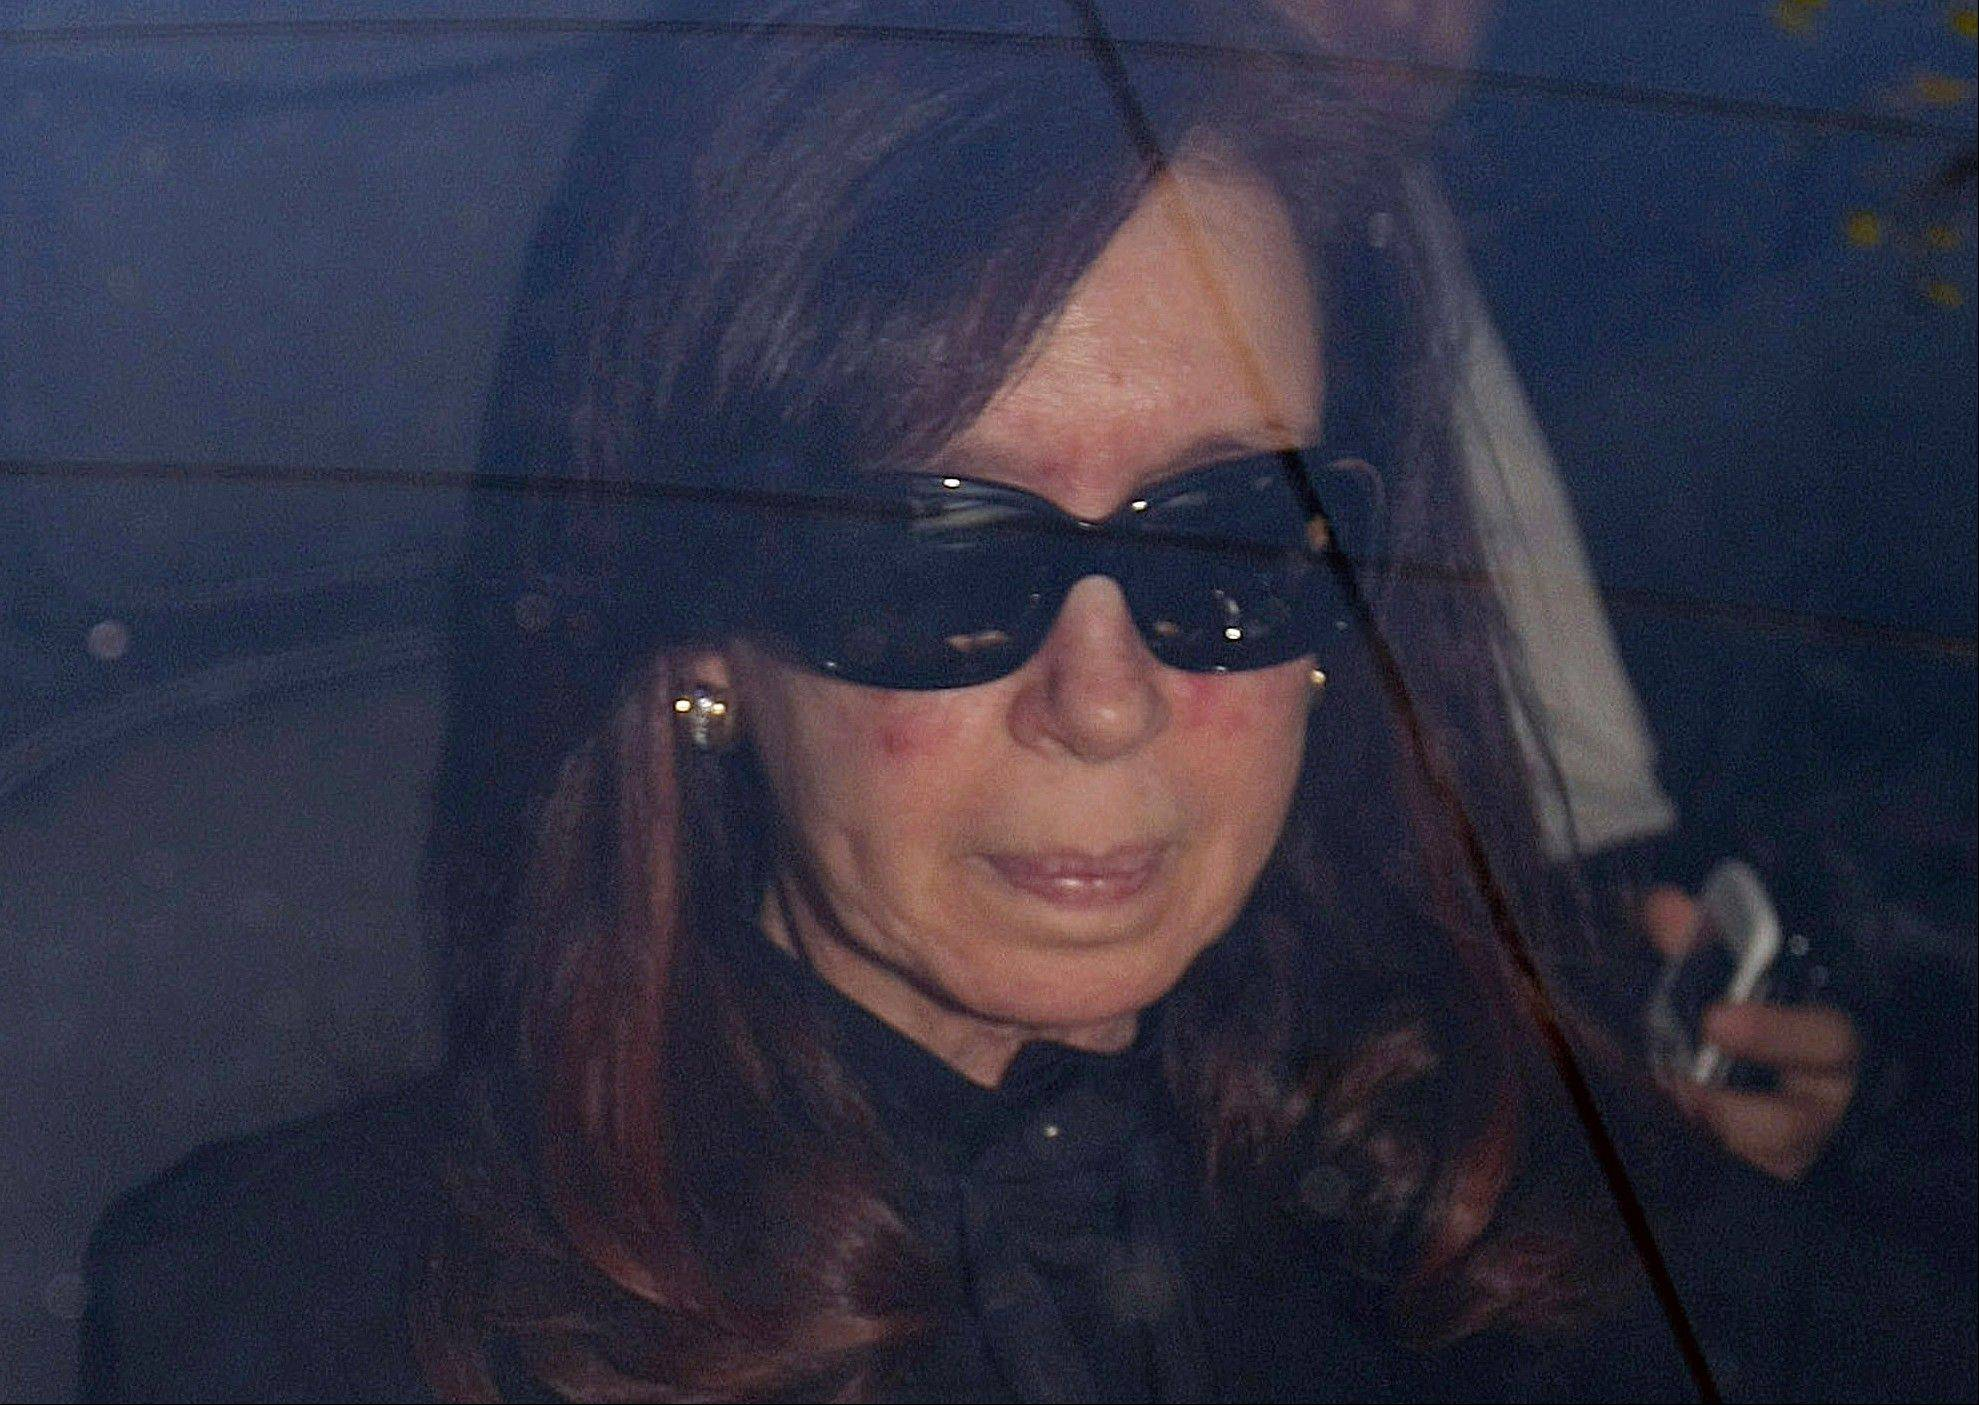 Argentina�s President Cristina Fernandez arrives to a local hospital, in Buenos Aires, Argentina, Monday, Oct. 7, 2013. Argentine president is back in the hospital, presumably for more treatment of the head injury that prompted doctors to order a month�s rest. Her car entered the Fundacion Favaloro hospital on Monday, as Cabinet members gathered without her in the government palace for a speech by Vice President Amado Boudou, who wished her strength and said they would carry on, �giving her the rest she deserves.�